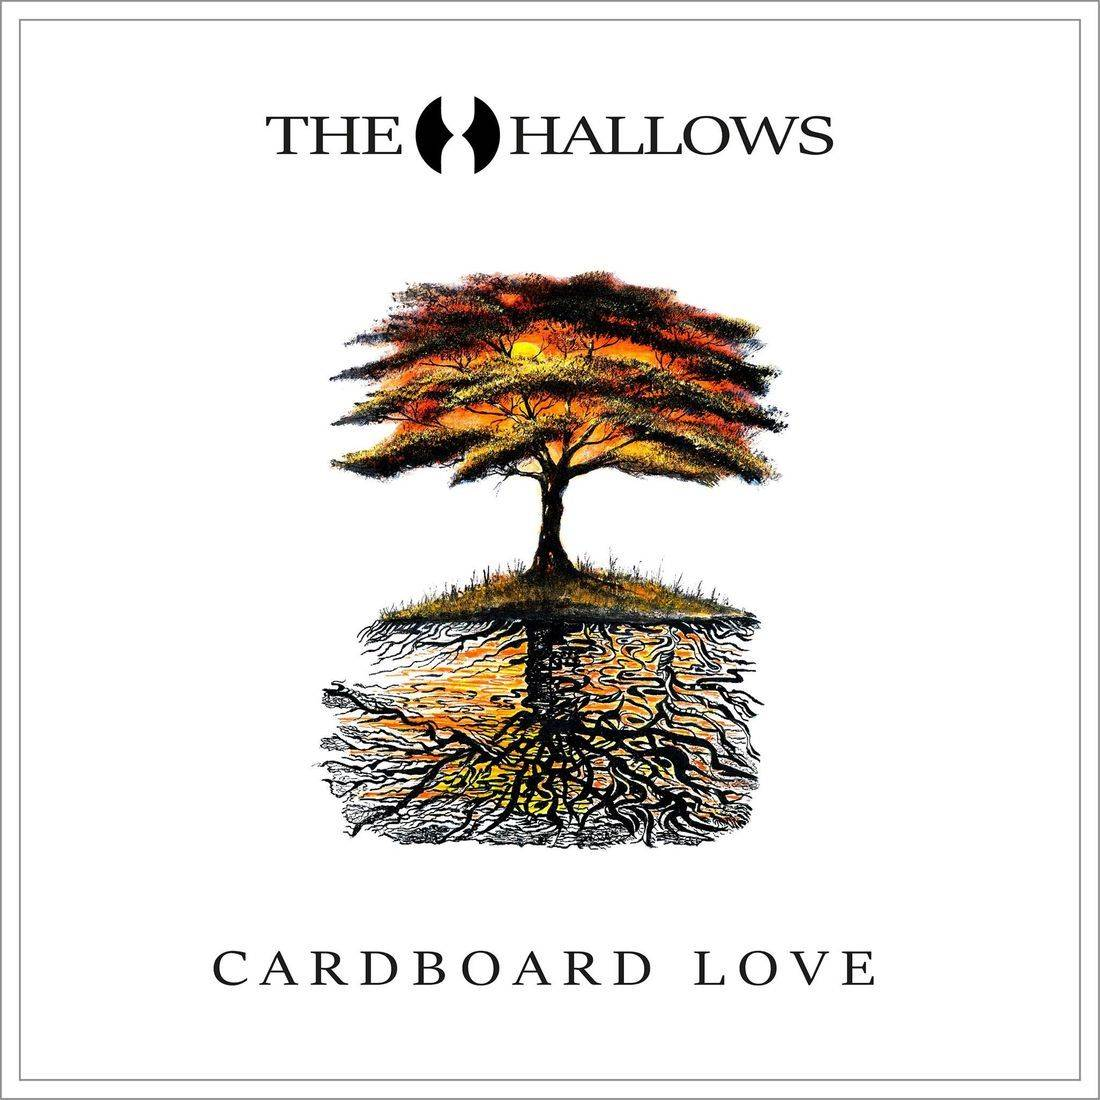 The Hallows Cardboard Love